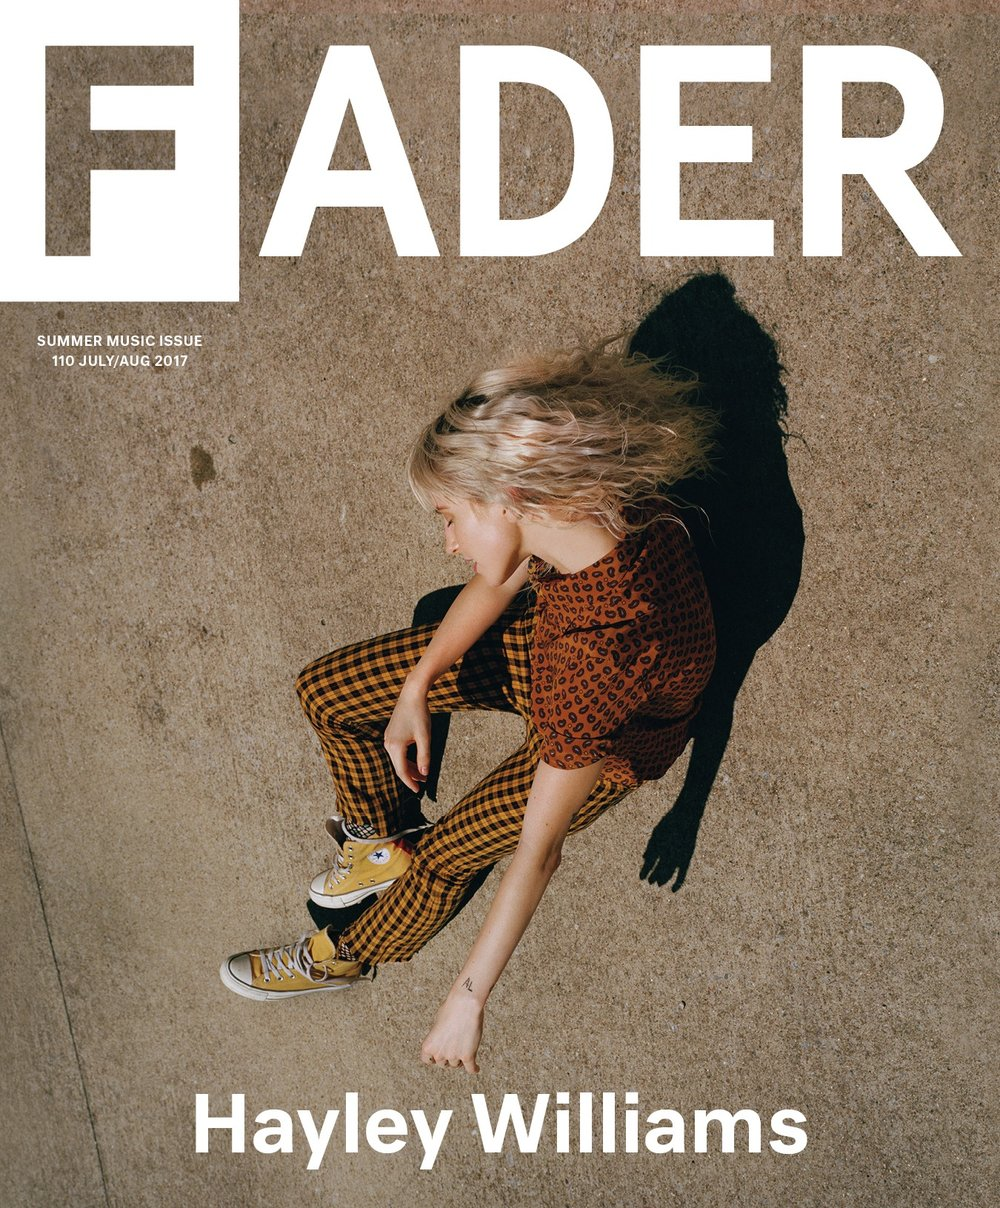 "<a href=""http://www.thefader.com/2017/06/29/paramore-hayley-williams-cover-story-interview​​​​​​​"" target=""_Blank"">THE FADER</a>"